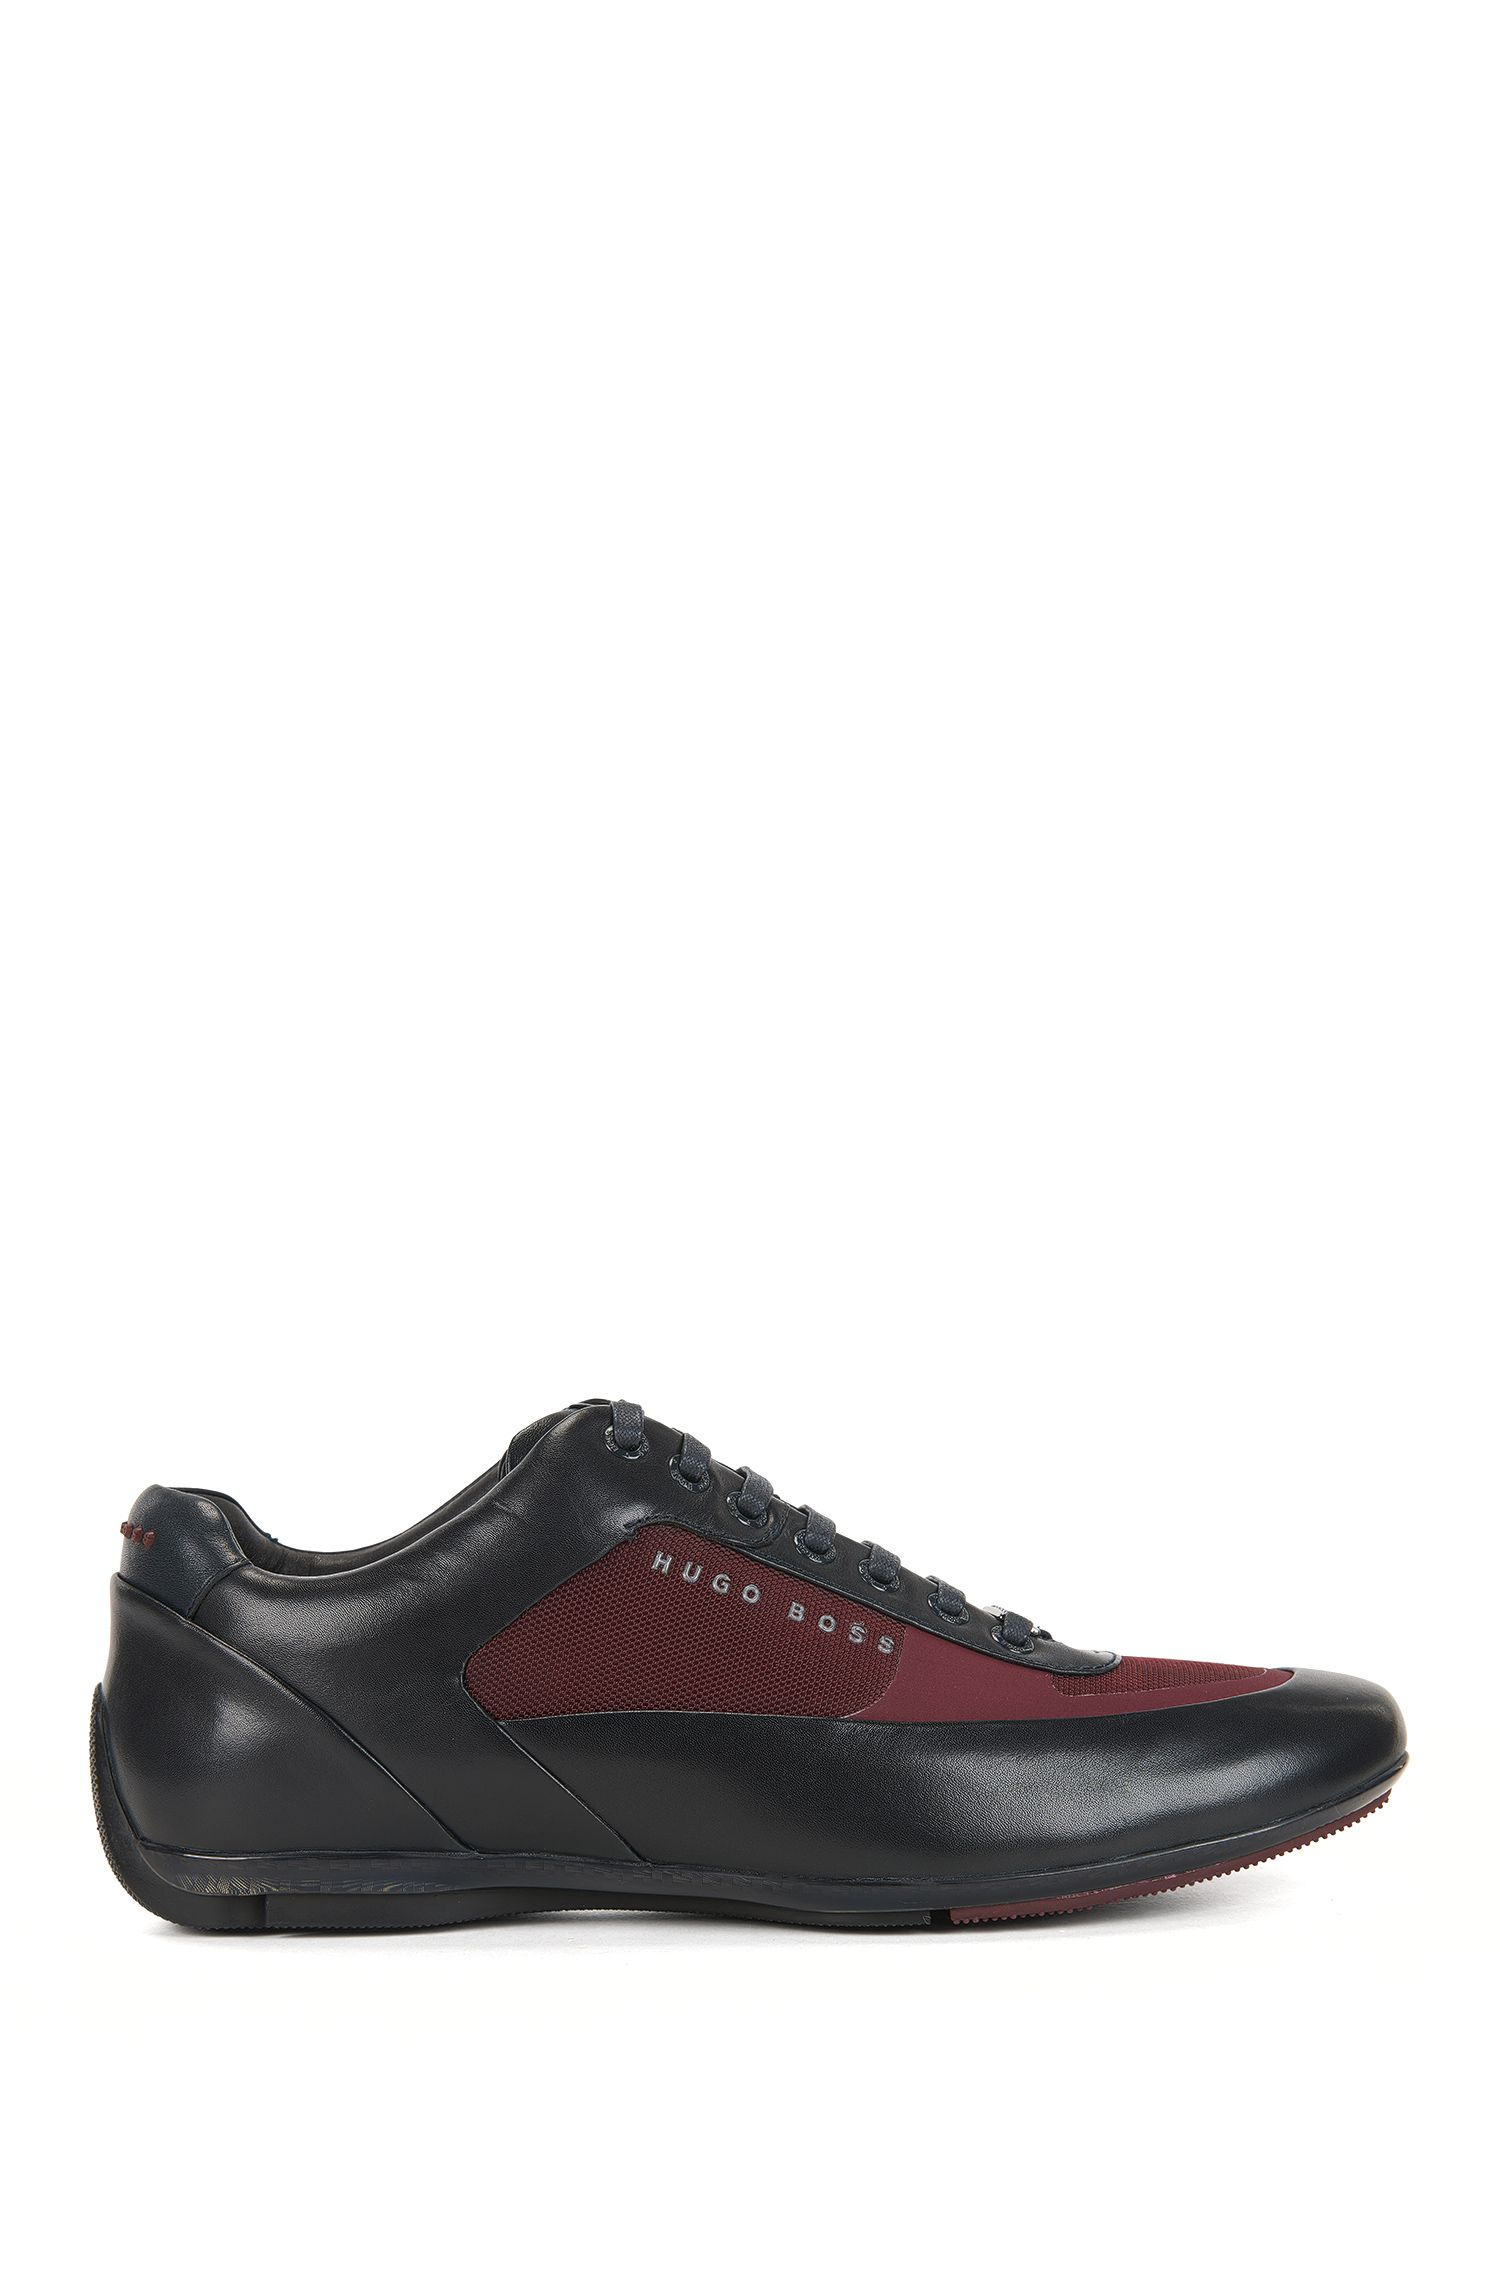 Leather Sneaker | HBRacing Lowp Itny